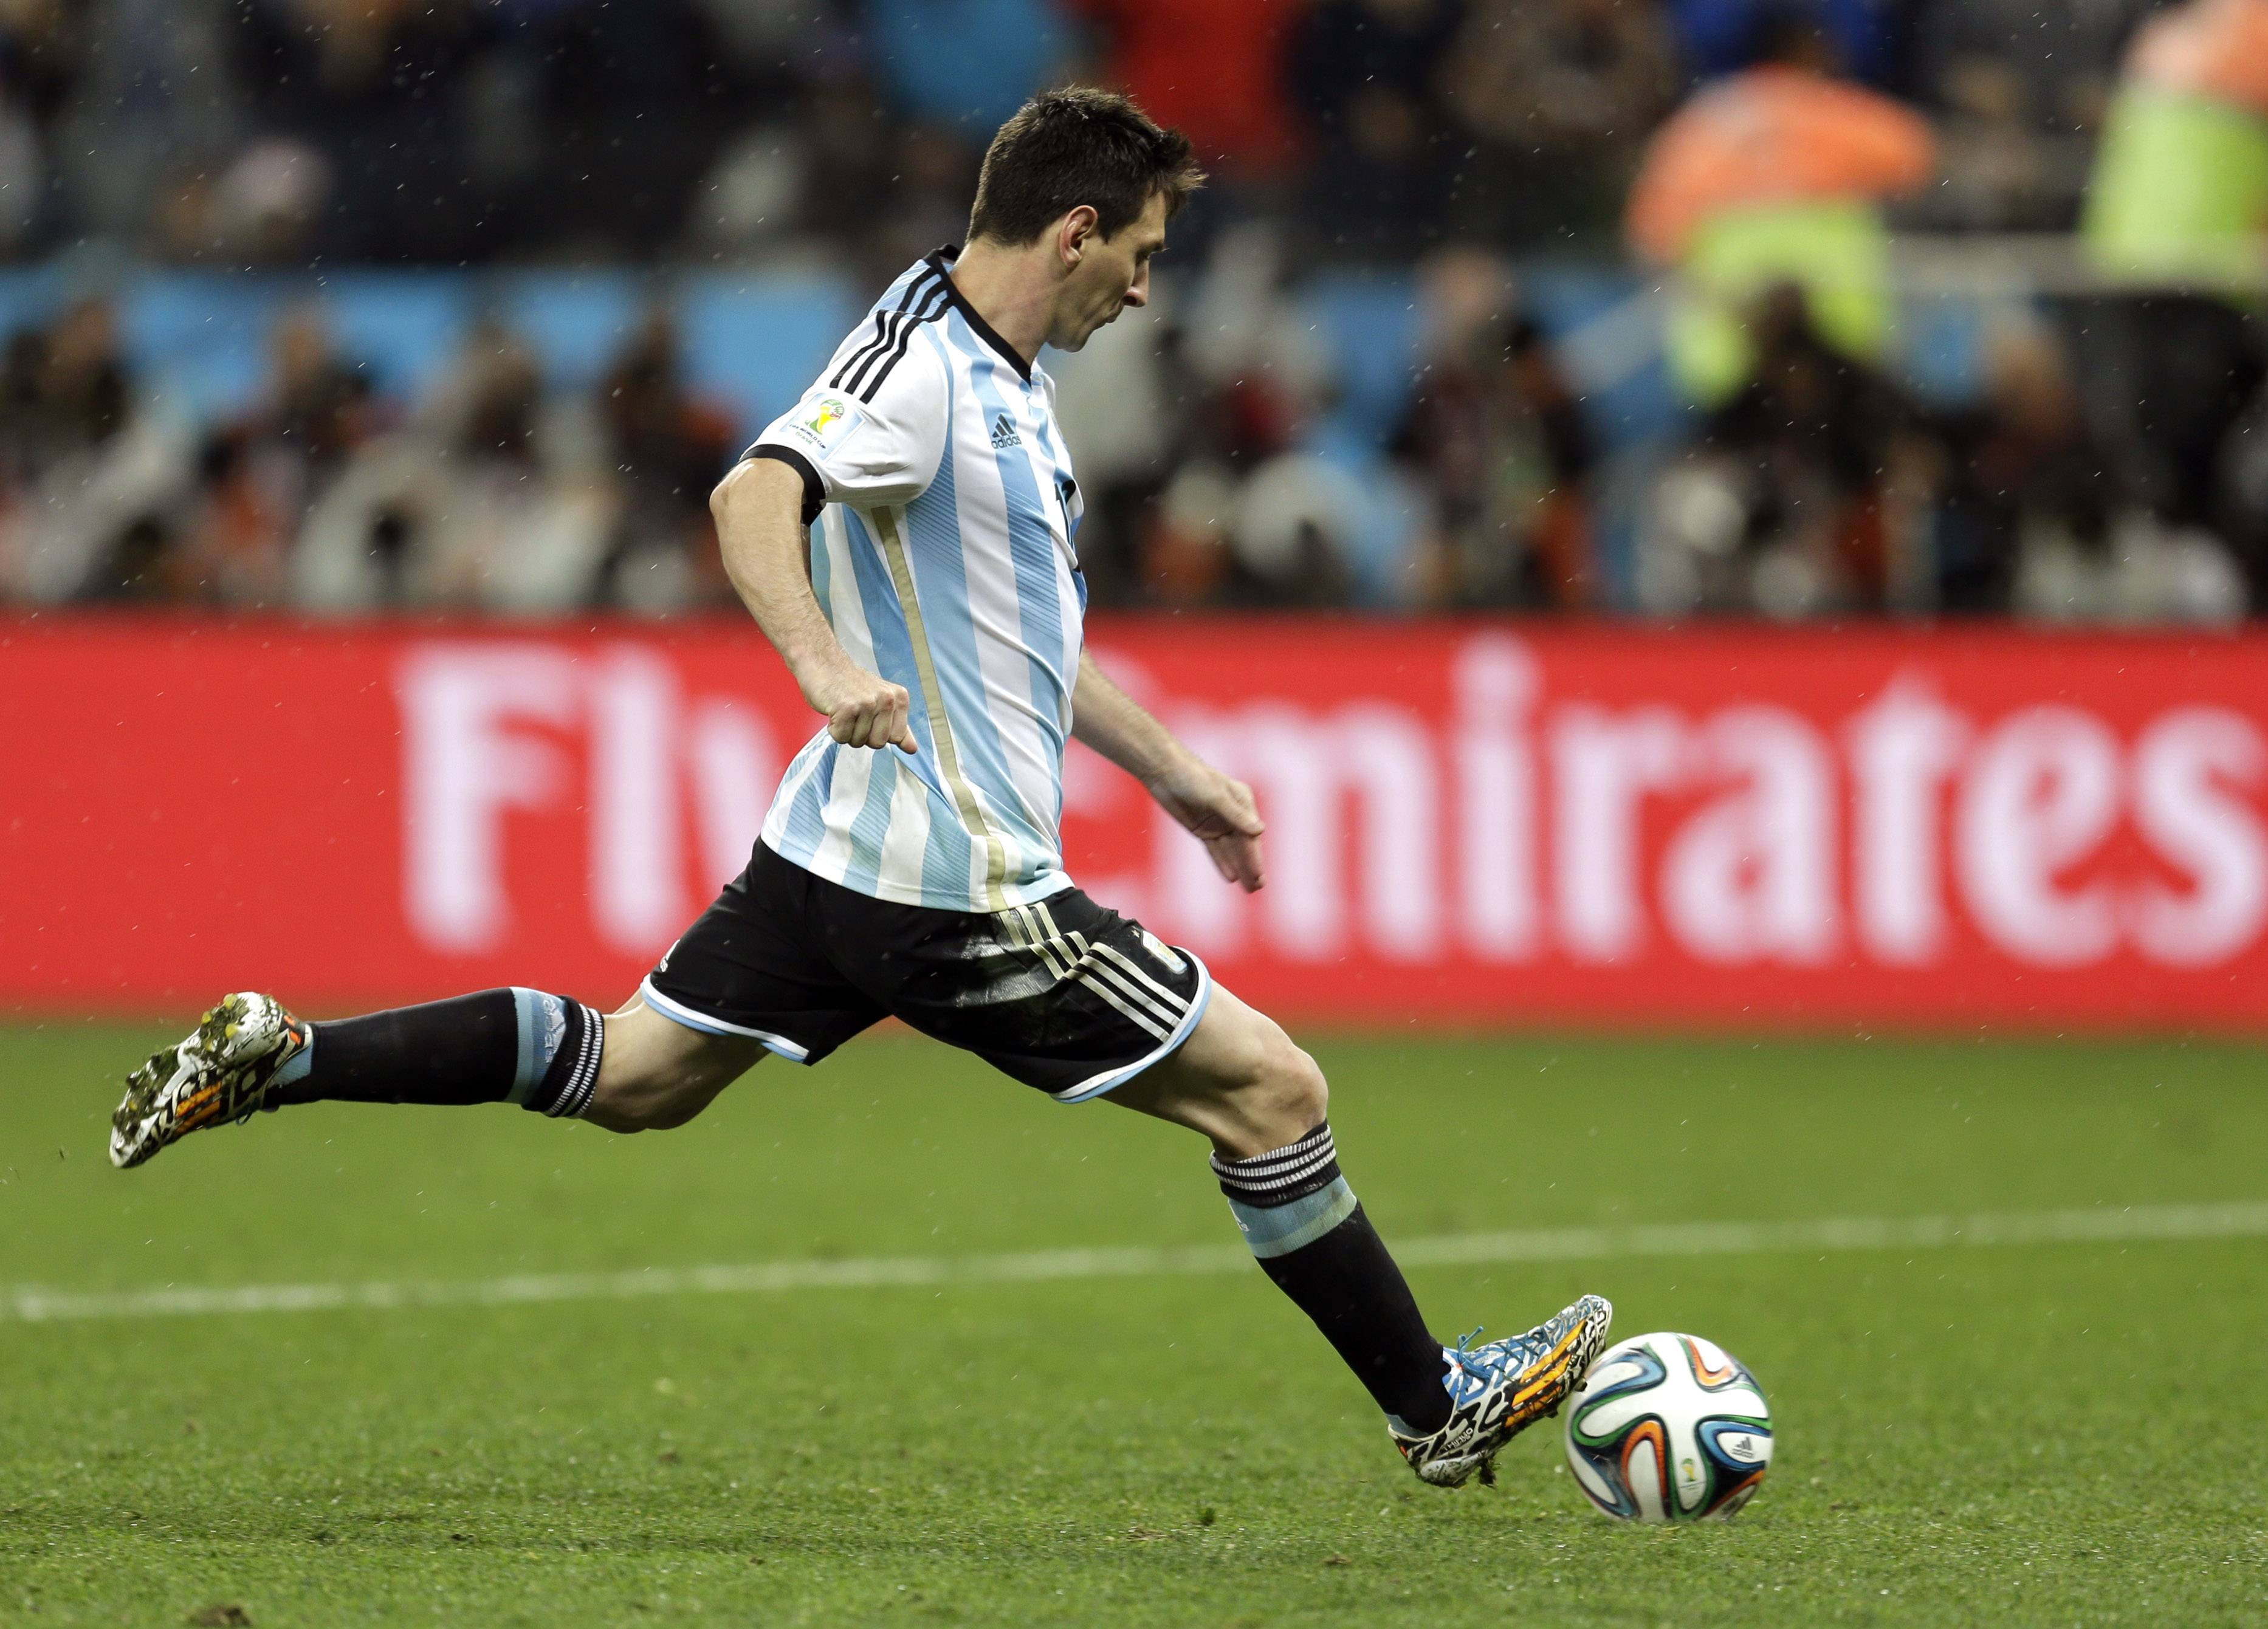 When it comes to free kicks or penalty kicks, Argentina's Lionel Messi has one of the most accurate kicks in soccer. His speed, patience, intelligence and balance also set him apart.